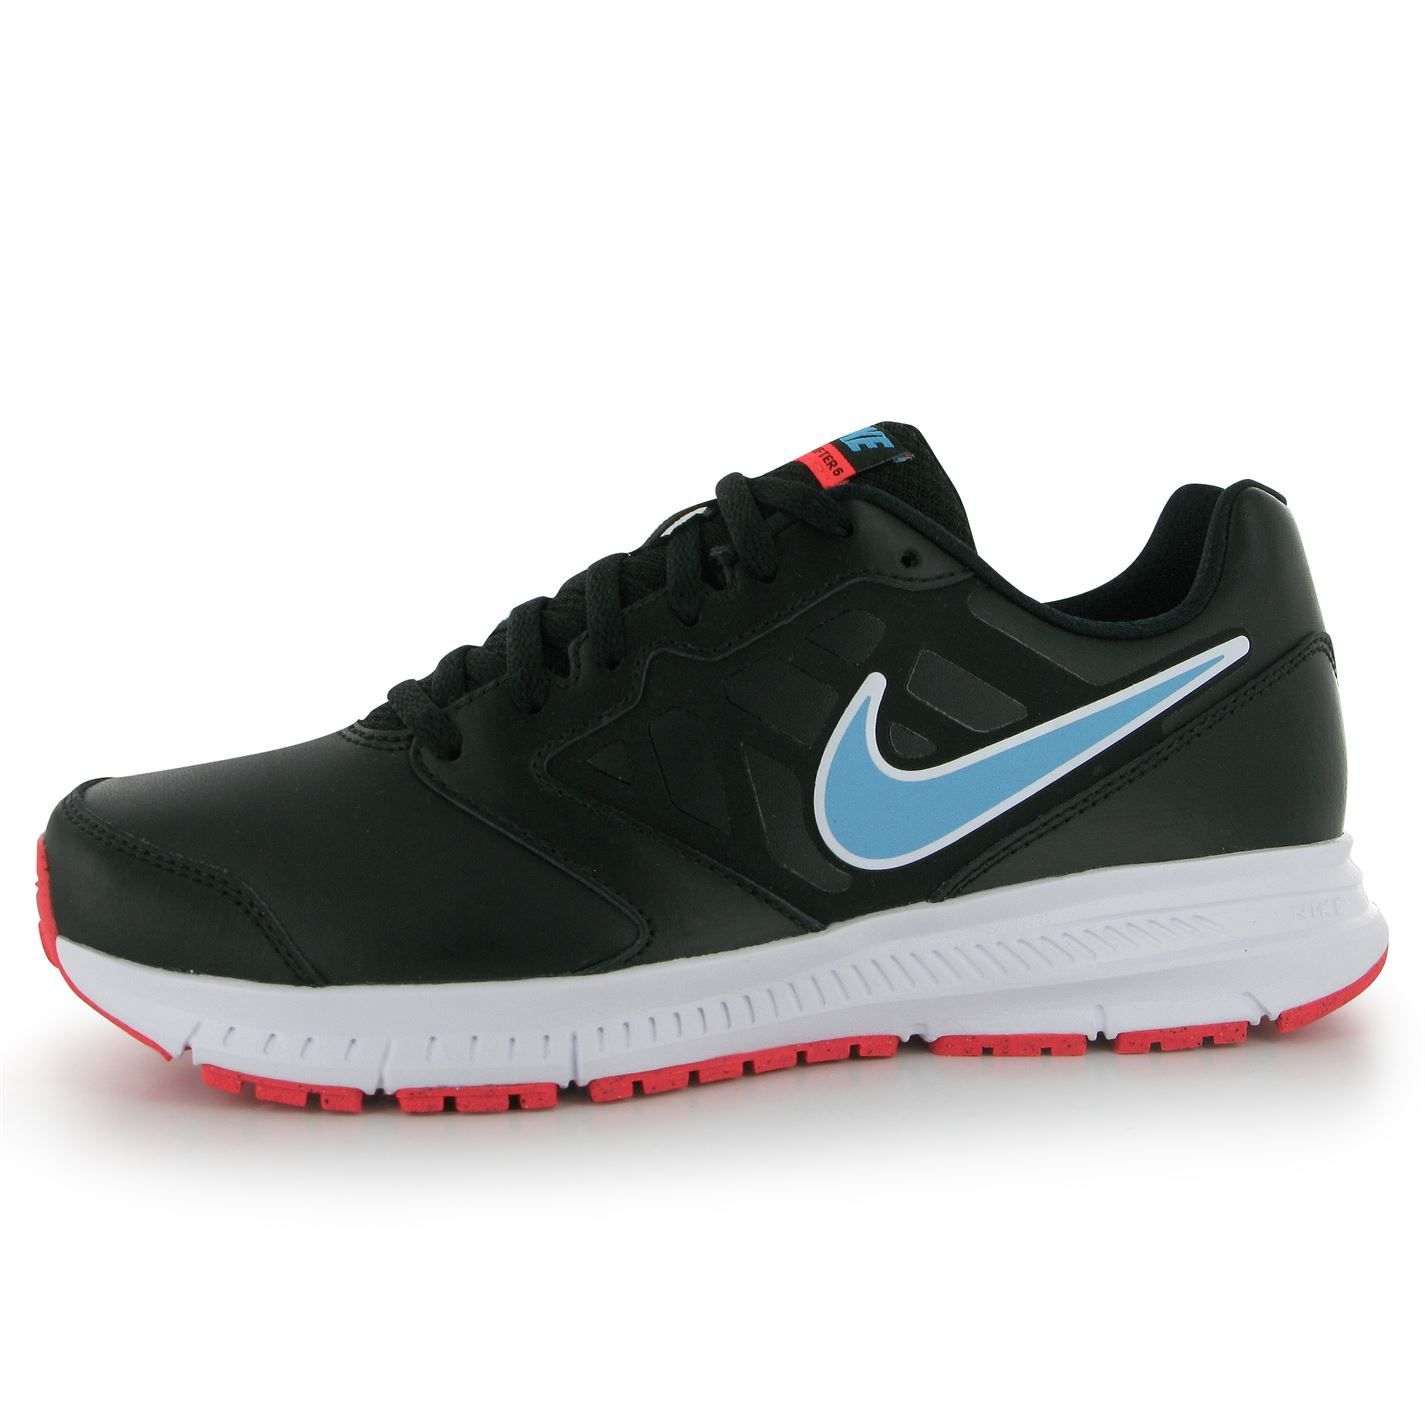 Nike Downshifter 6 Leather Ladies Running Shoes